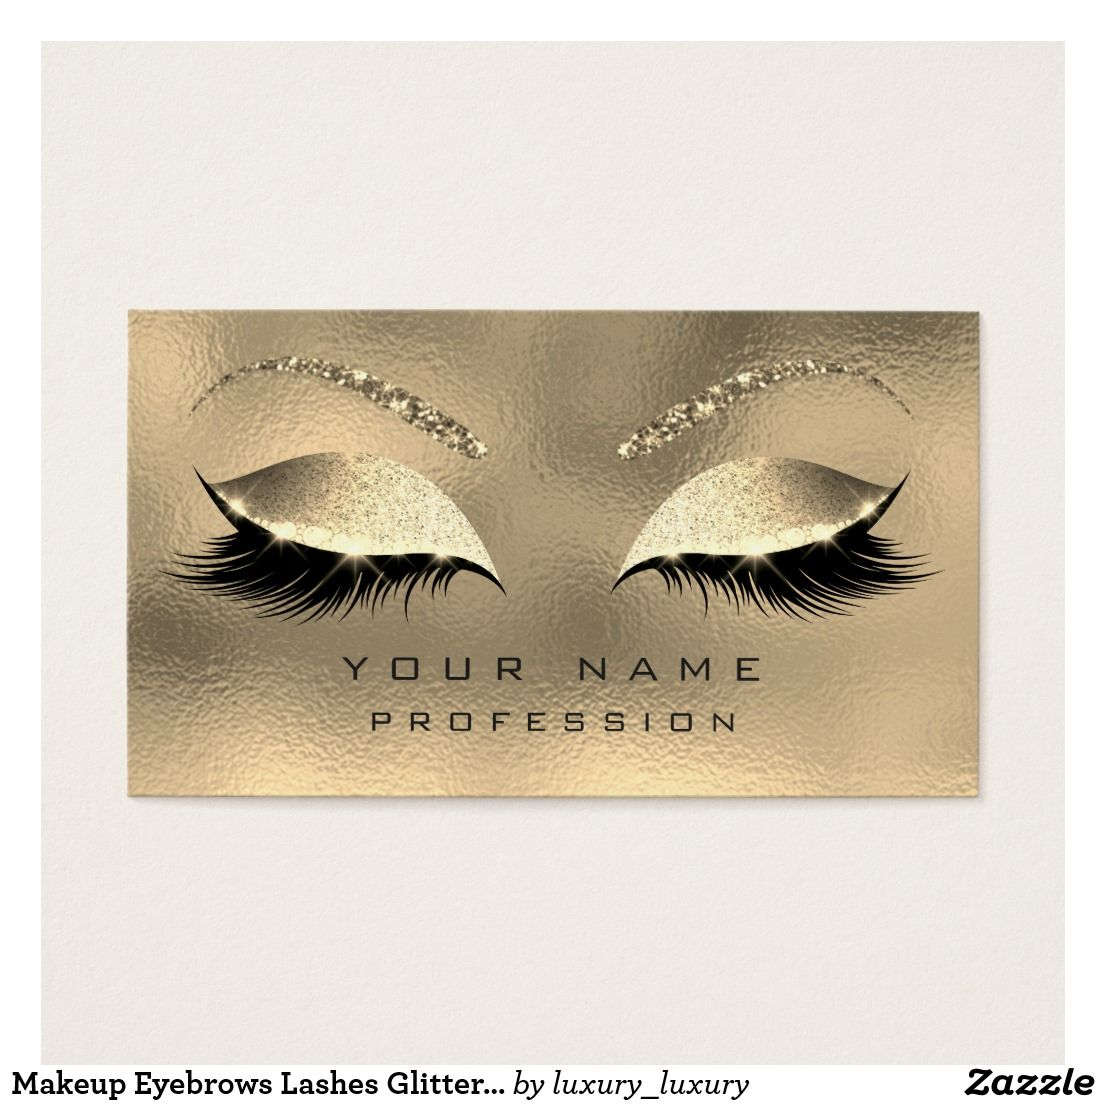 4f151662bbb Makeup Eyebrows Lashes Glitter Diamond Sparkly Business Card ...